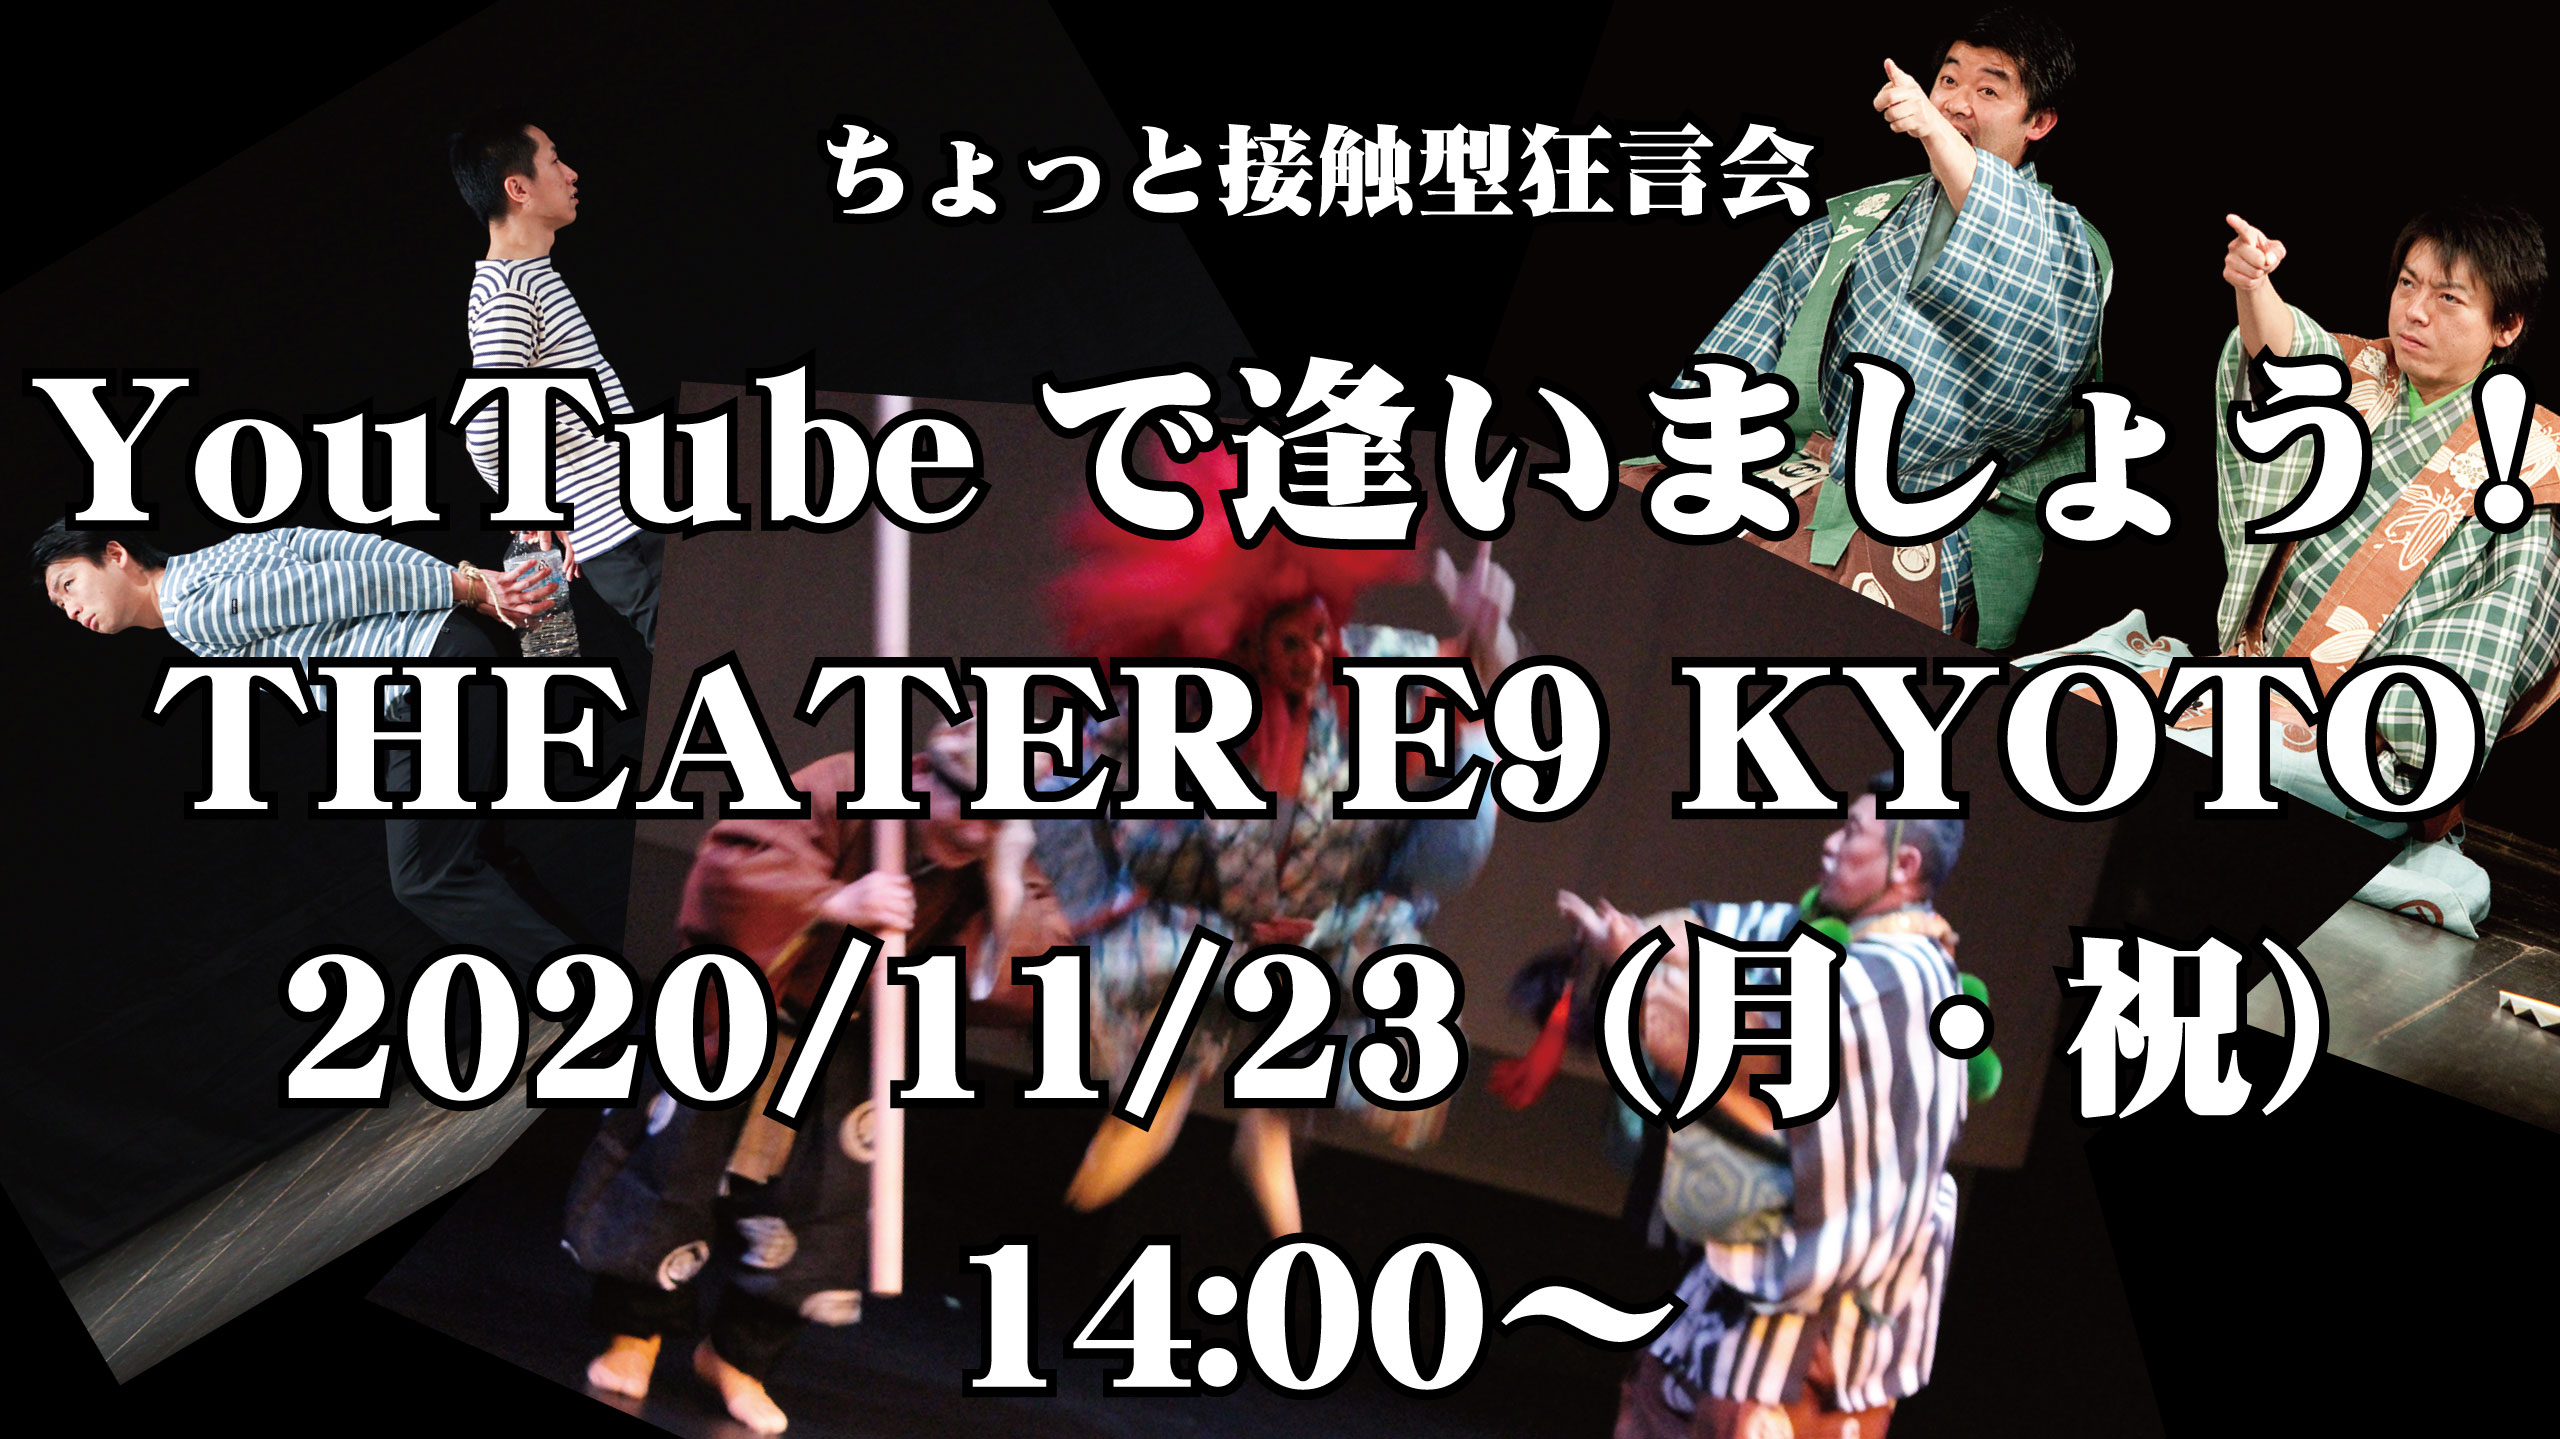 YouTubeで逢いましょう!〜THEATER E9 KYOTO〜